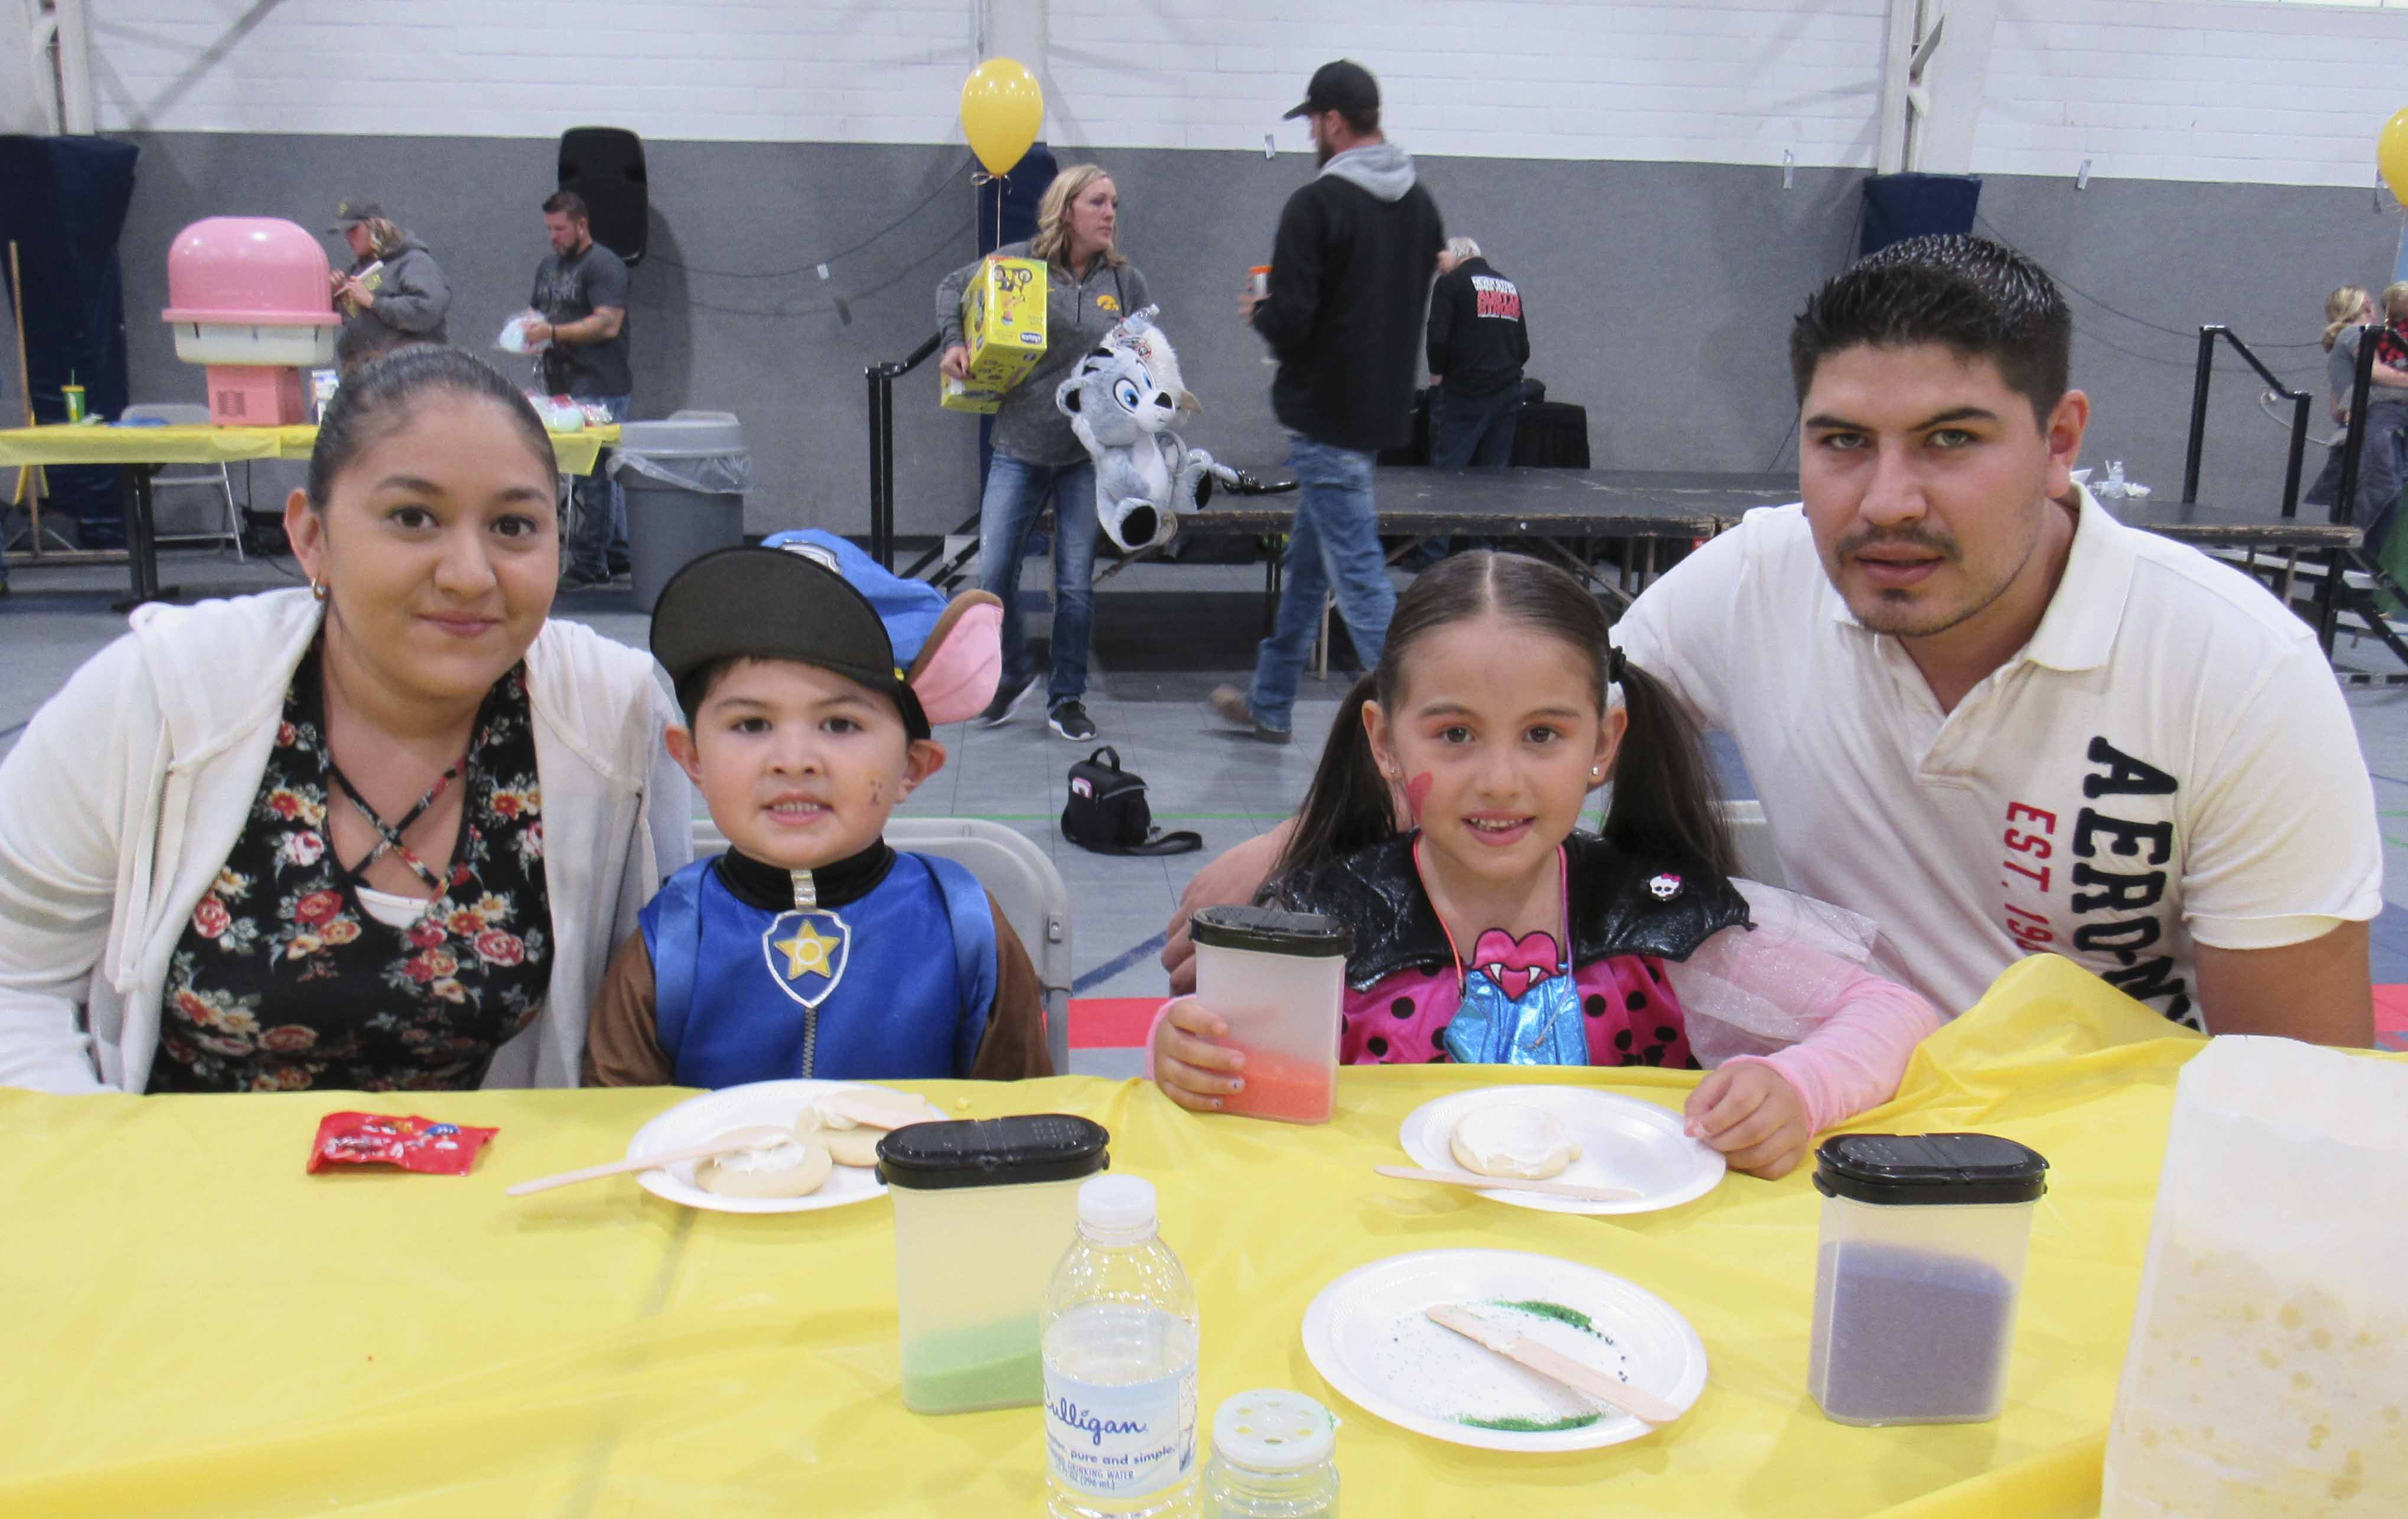 The Second Annual Austin's Halloween Fun Day to Scare Away Childhood Cancer included numerous activities for kids of all ages and families. The event honors Austin Smith who passed away in 2016 from cancer. Austin's birthday is also Oct. 28. The Fernandez family took part in cookie decorating. From left are Celene, Fermin Jr., Cynthia, and Fermin.